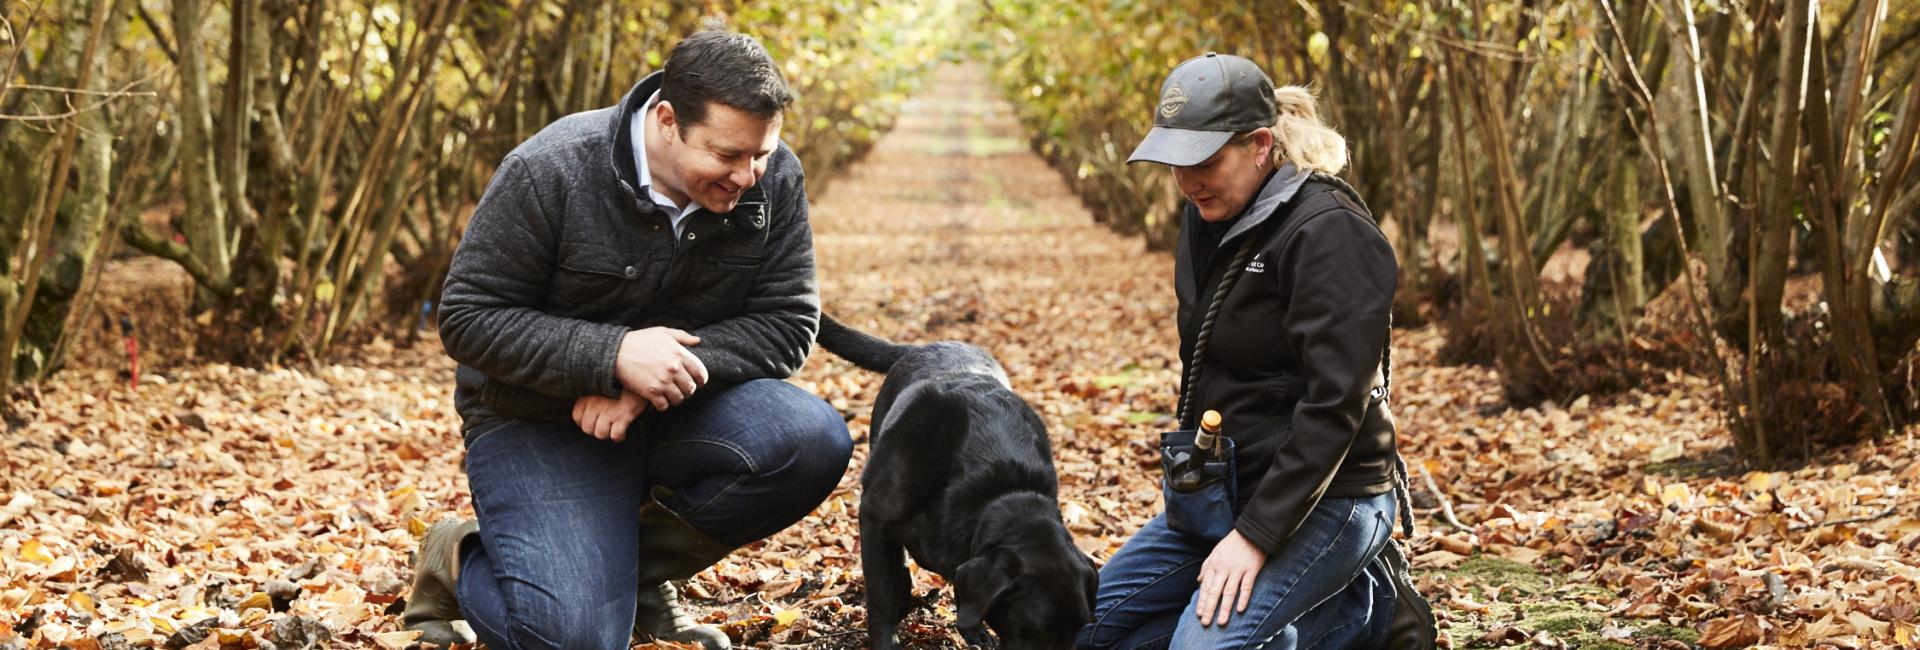 Truffle hunting in Manjimup - Australias South West